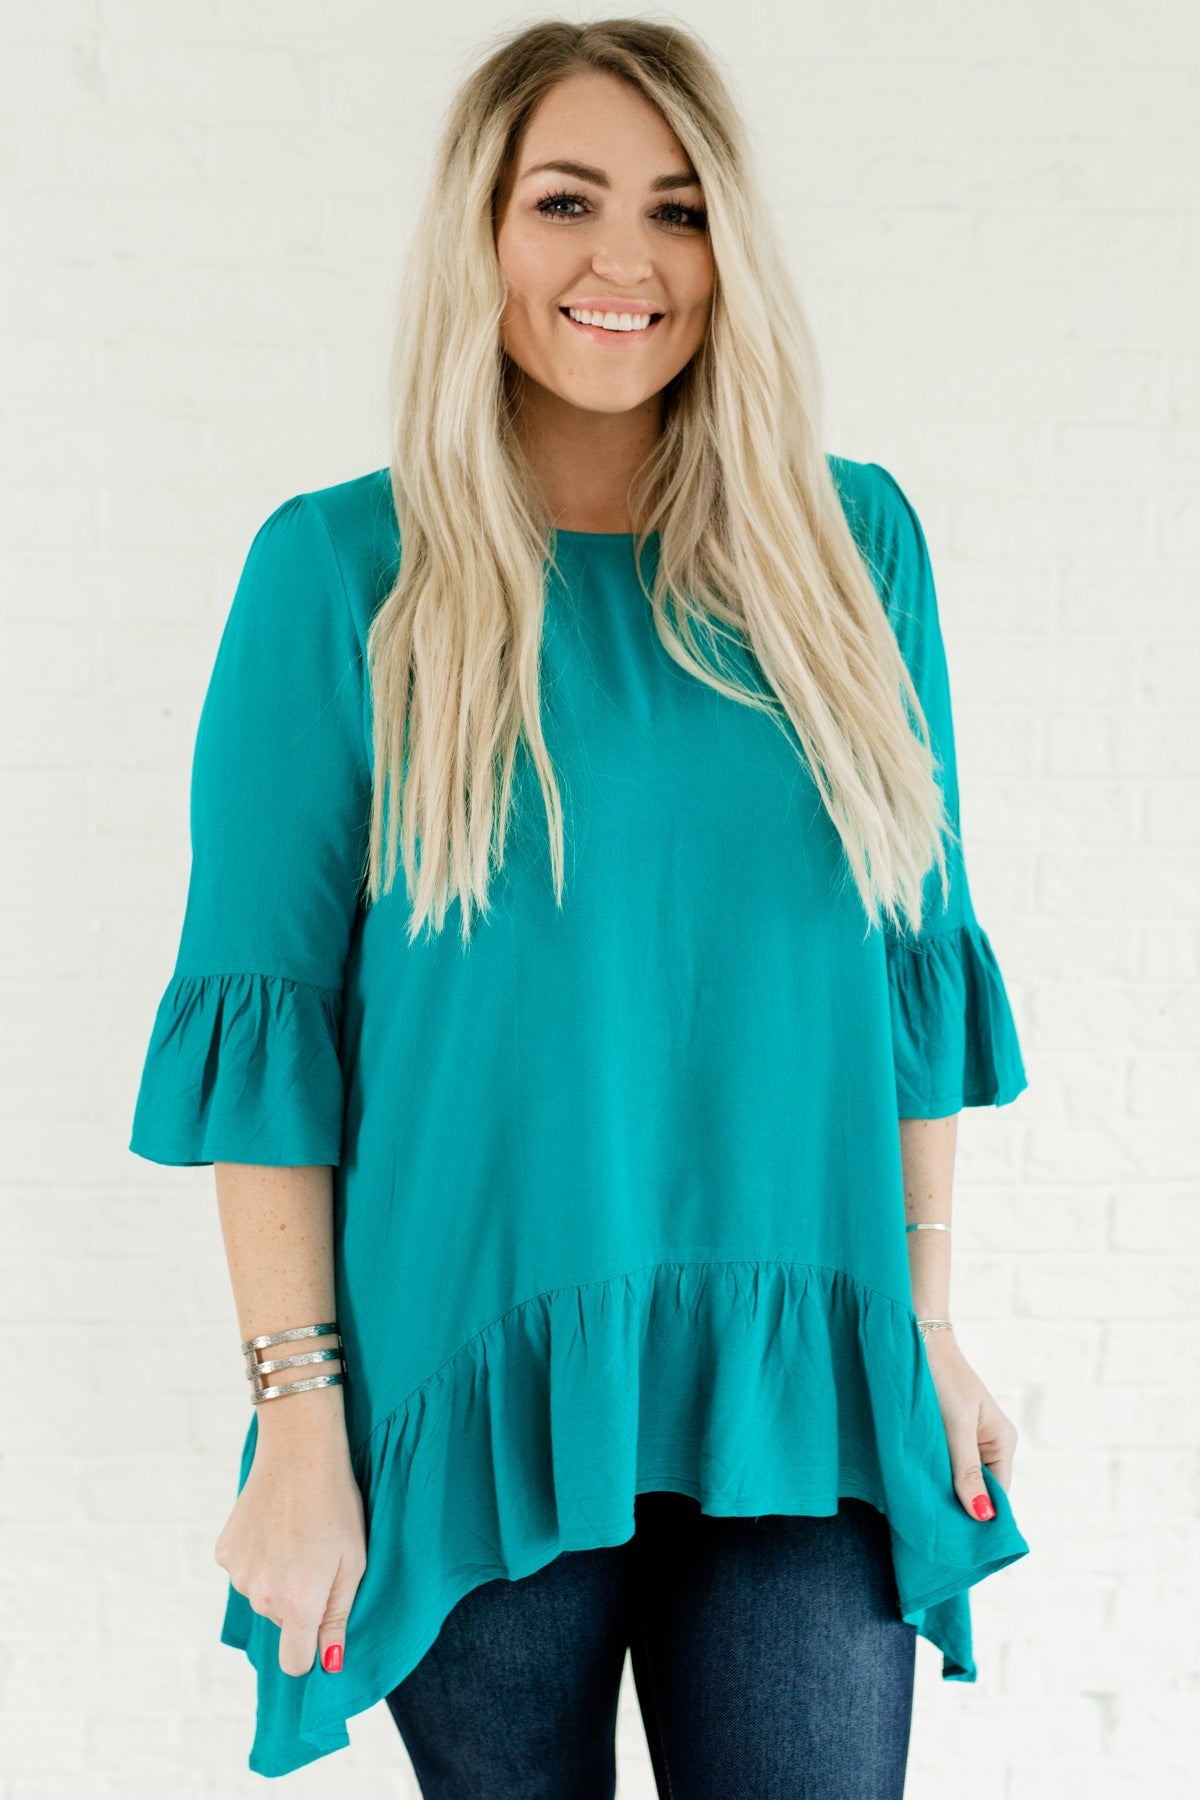 9906535b008 Teal Plus Size Boutique Ruffle Tunic Tops Affordable Online Boutique